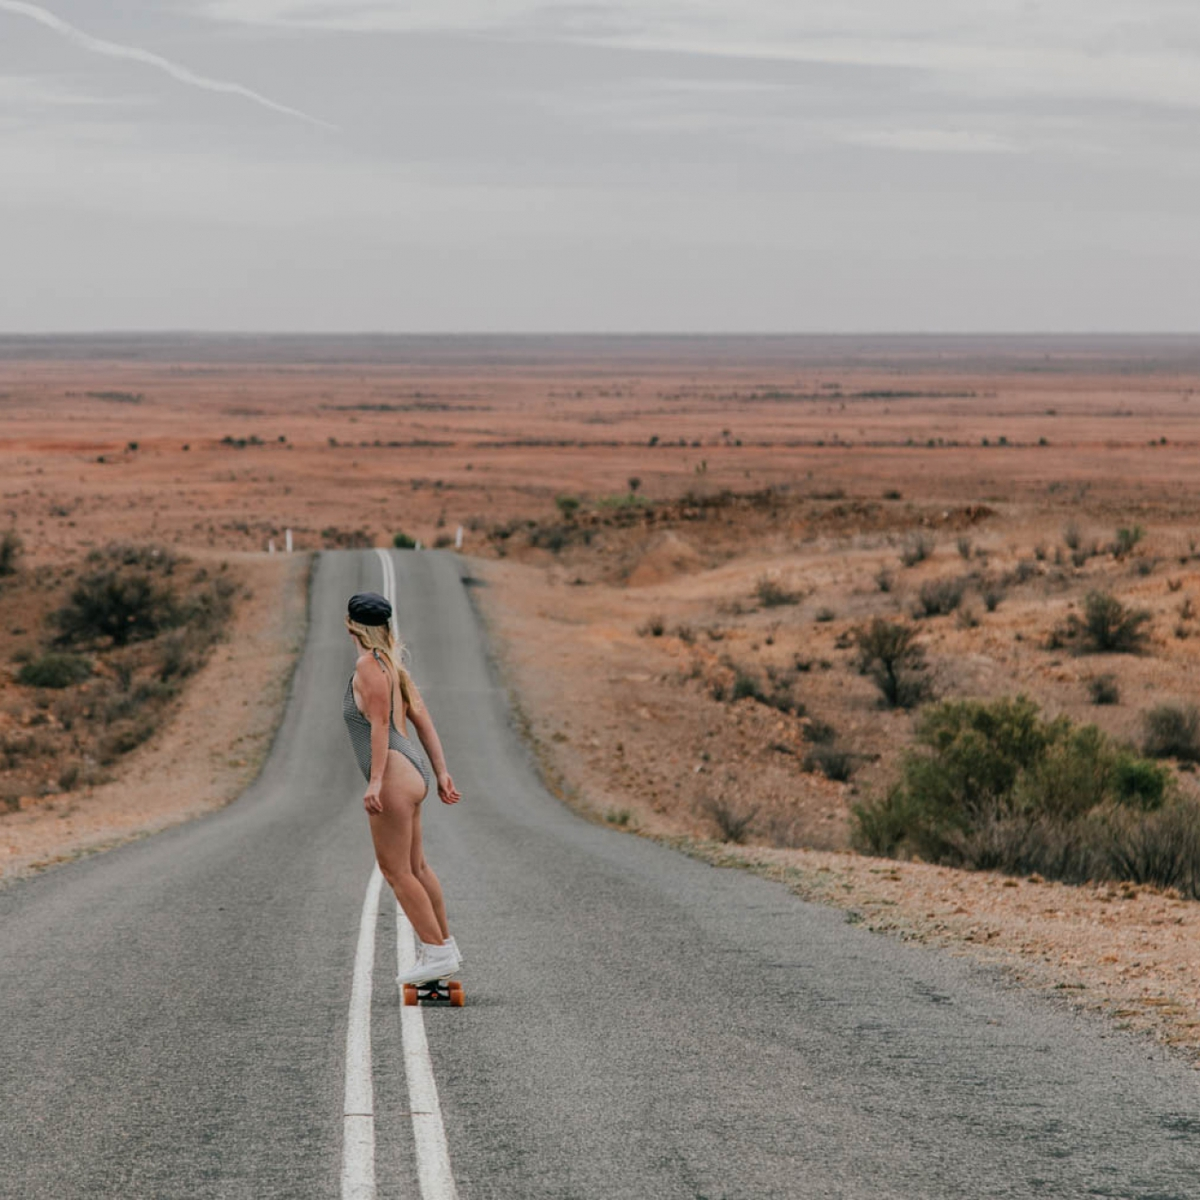 The Epic Outback Sydney to Broken Hill Road Trip Itinerary: 9 Days through Dust and Magic Sunsets